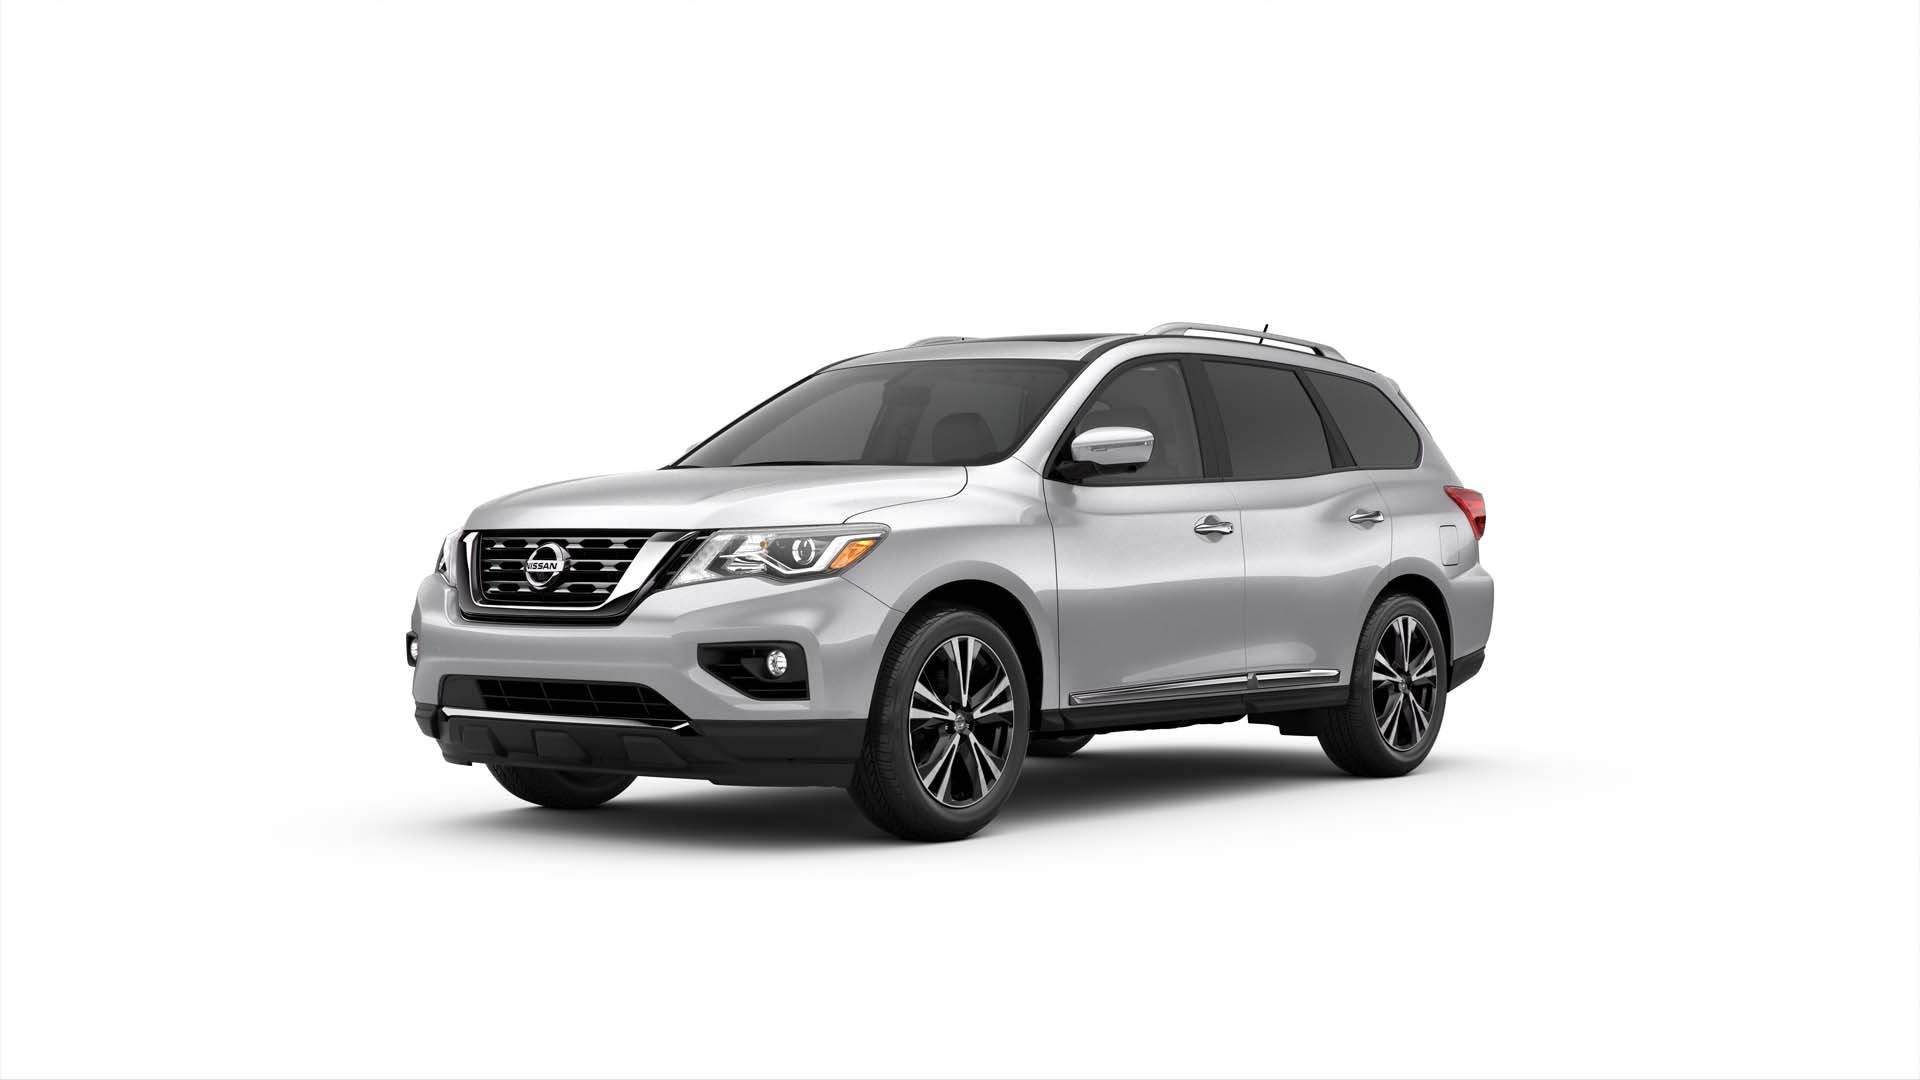 2017 Nissan Pathfinder Performance Review - The Car Connection